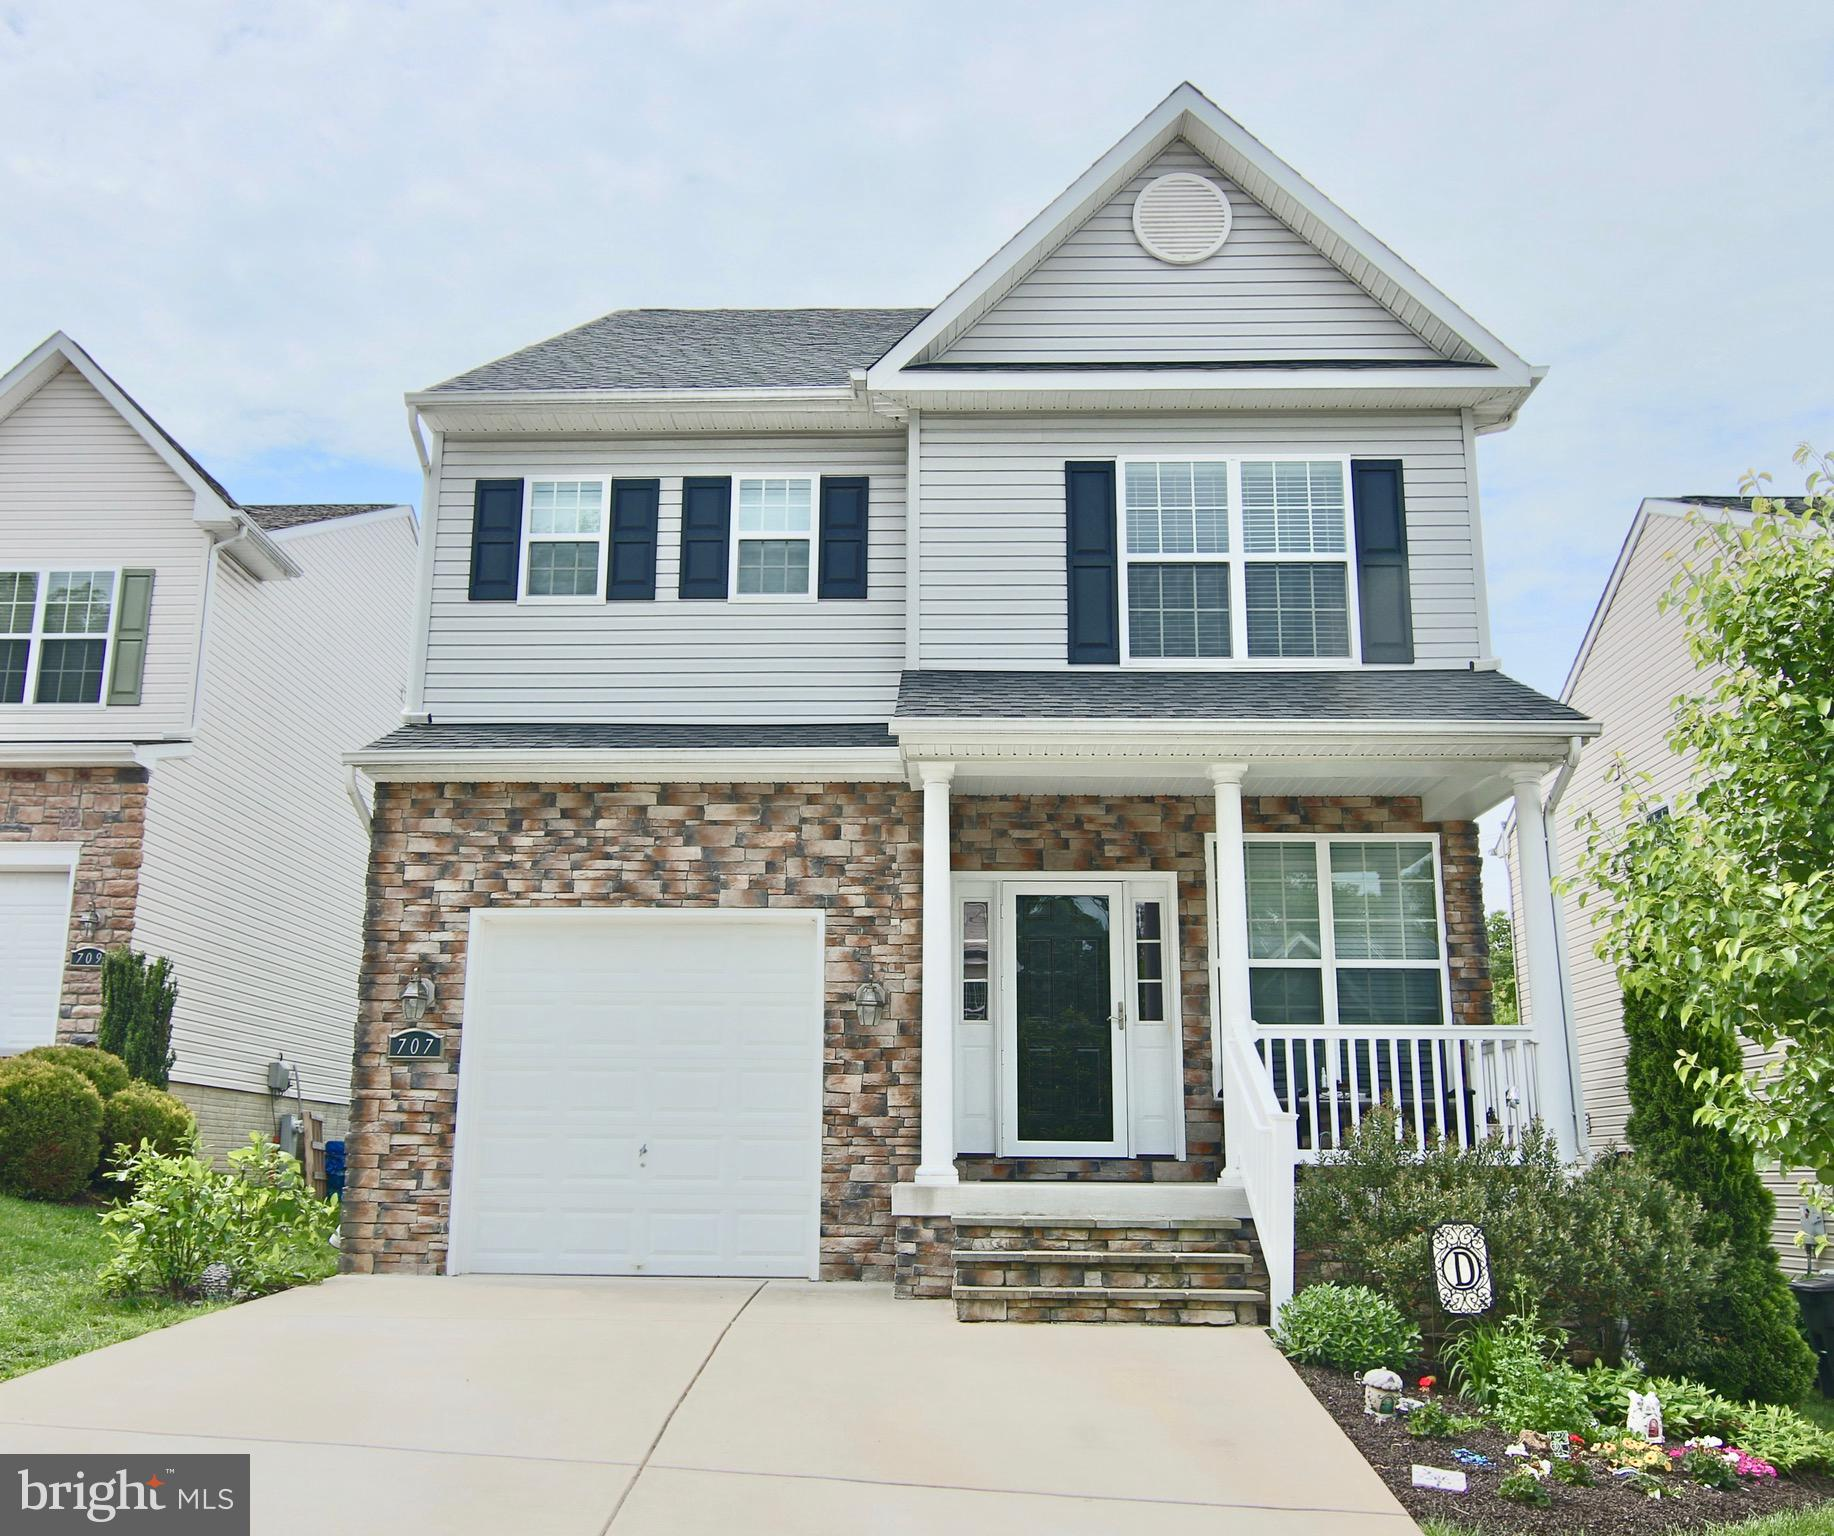 707 CRAWFORDS KNOLL COURT, ODENTON, MD 21113